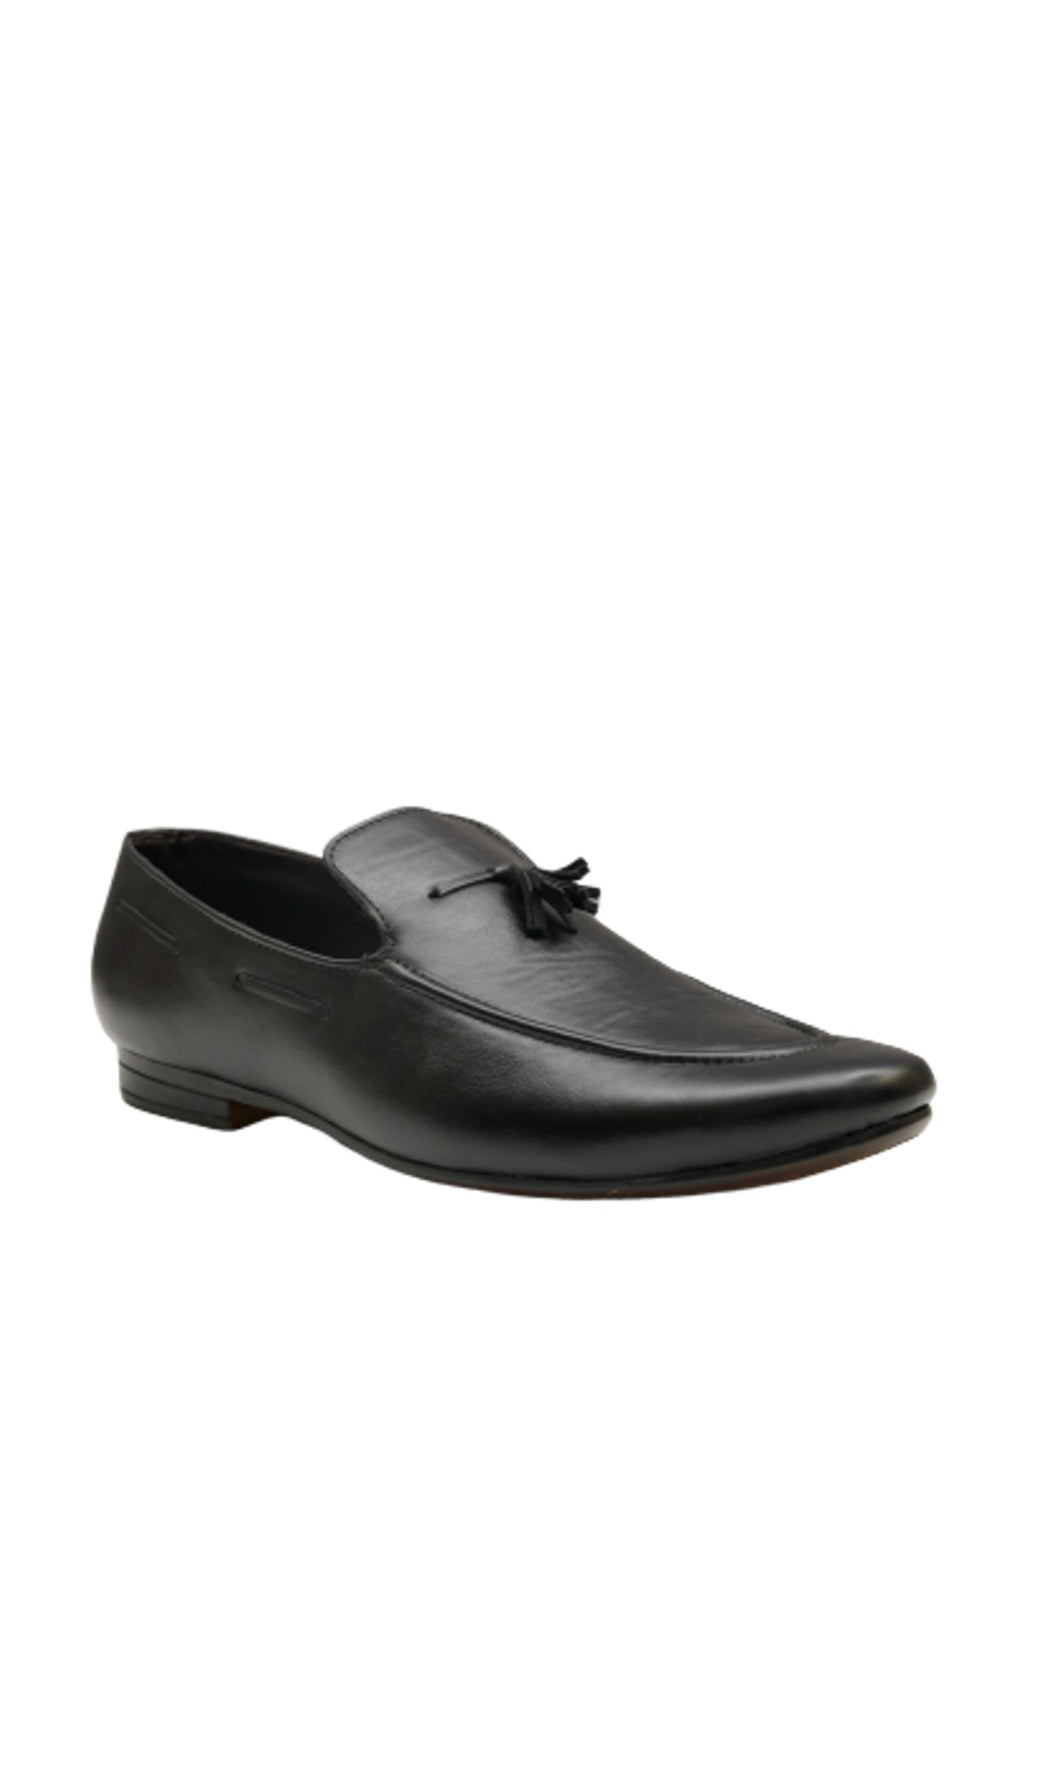 Men Black Slip-on Loafers